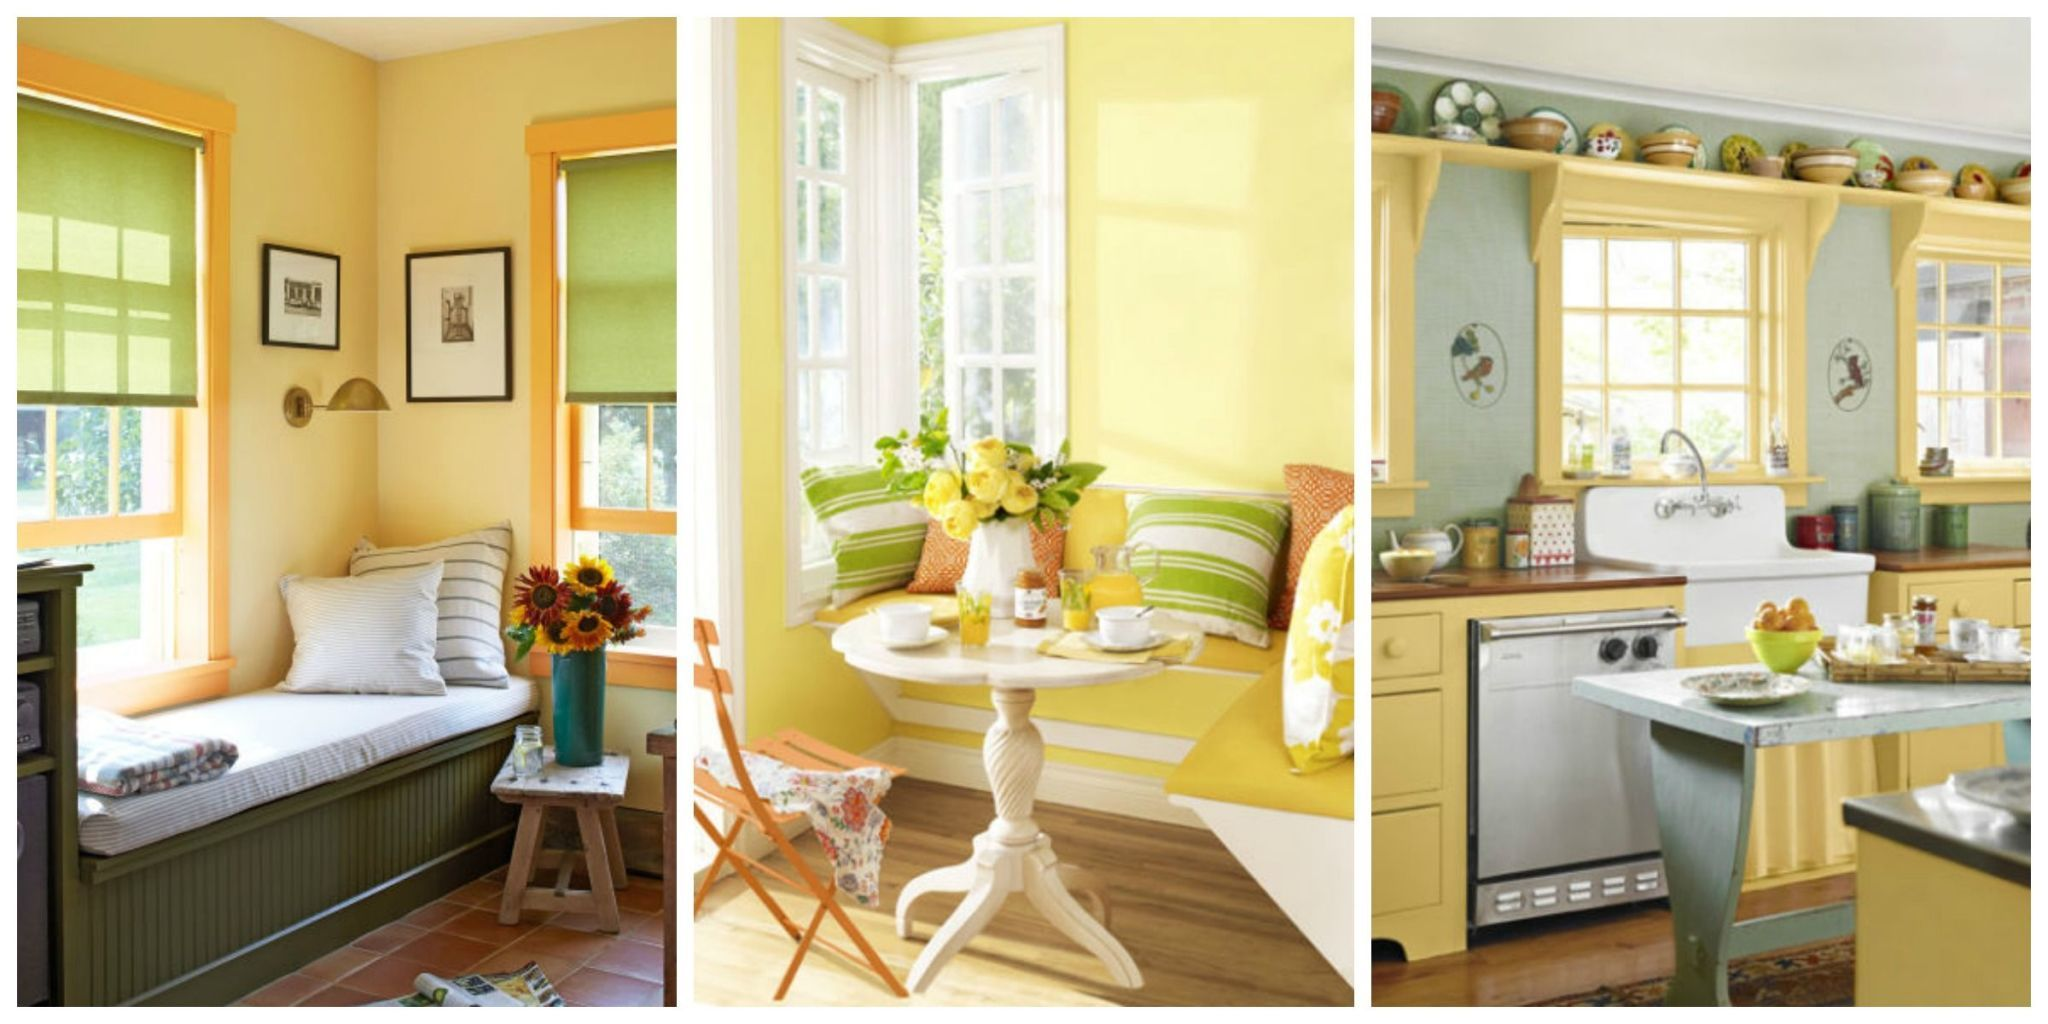 Bring The Sunshine Inside With Yellow Decor And Accents.